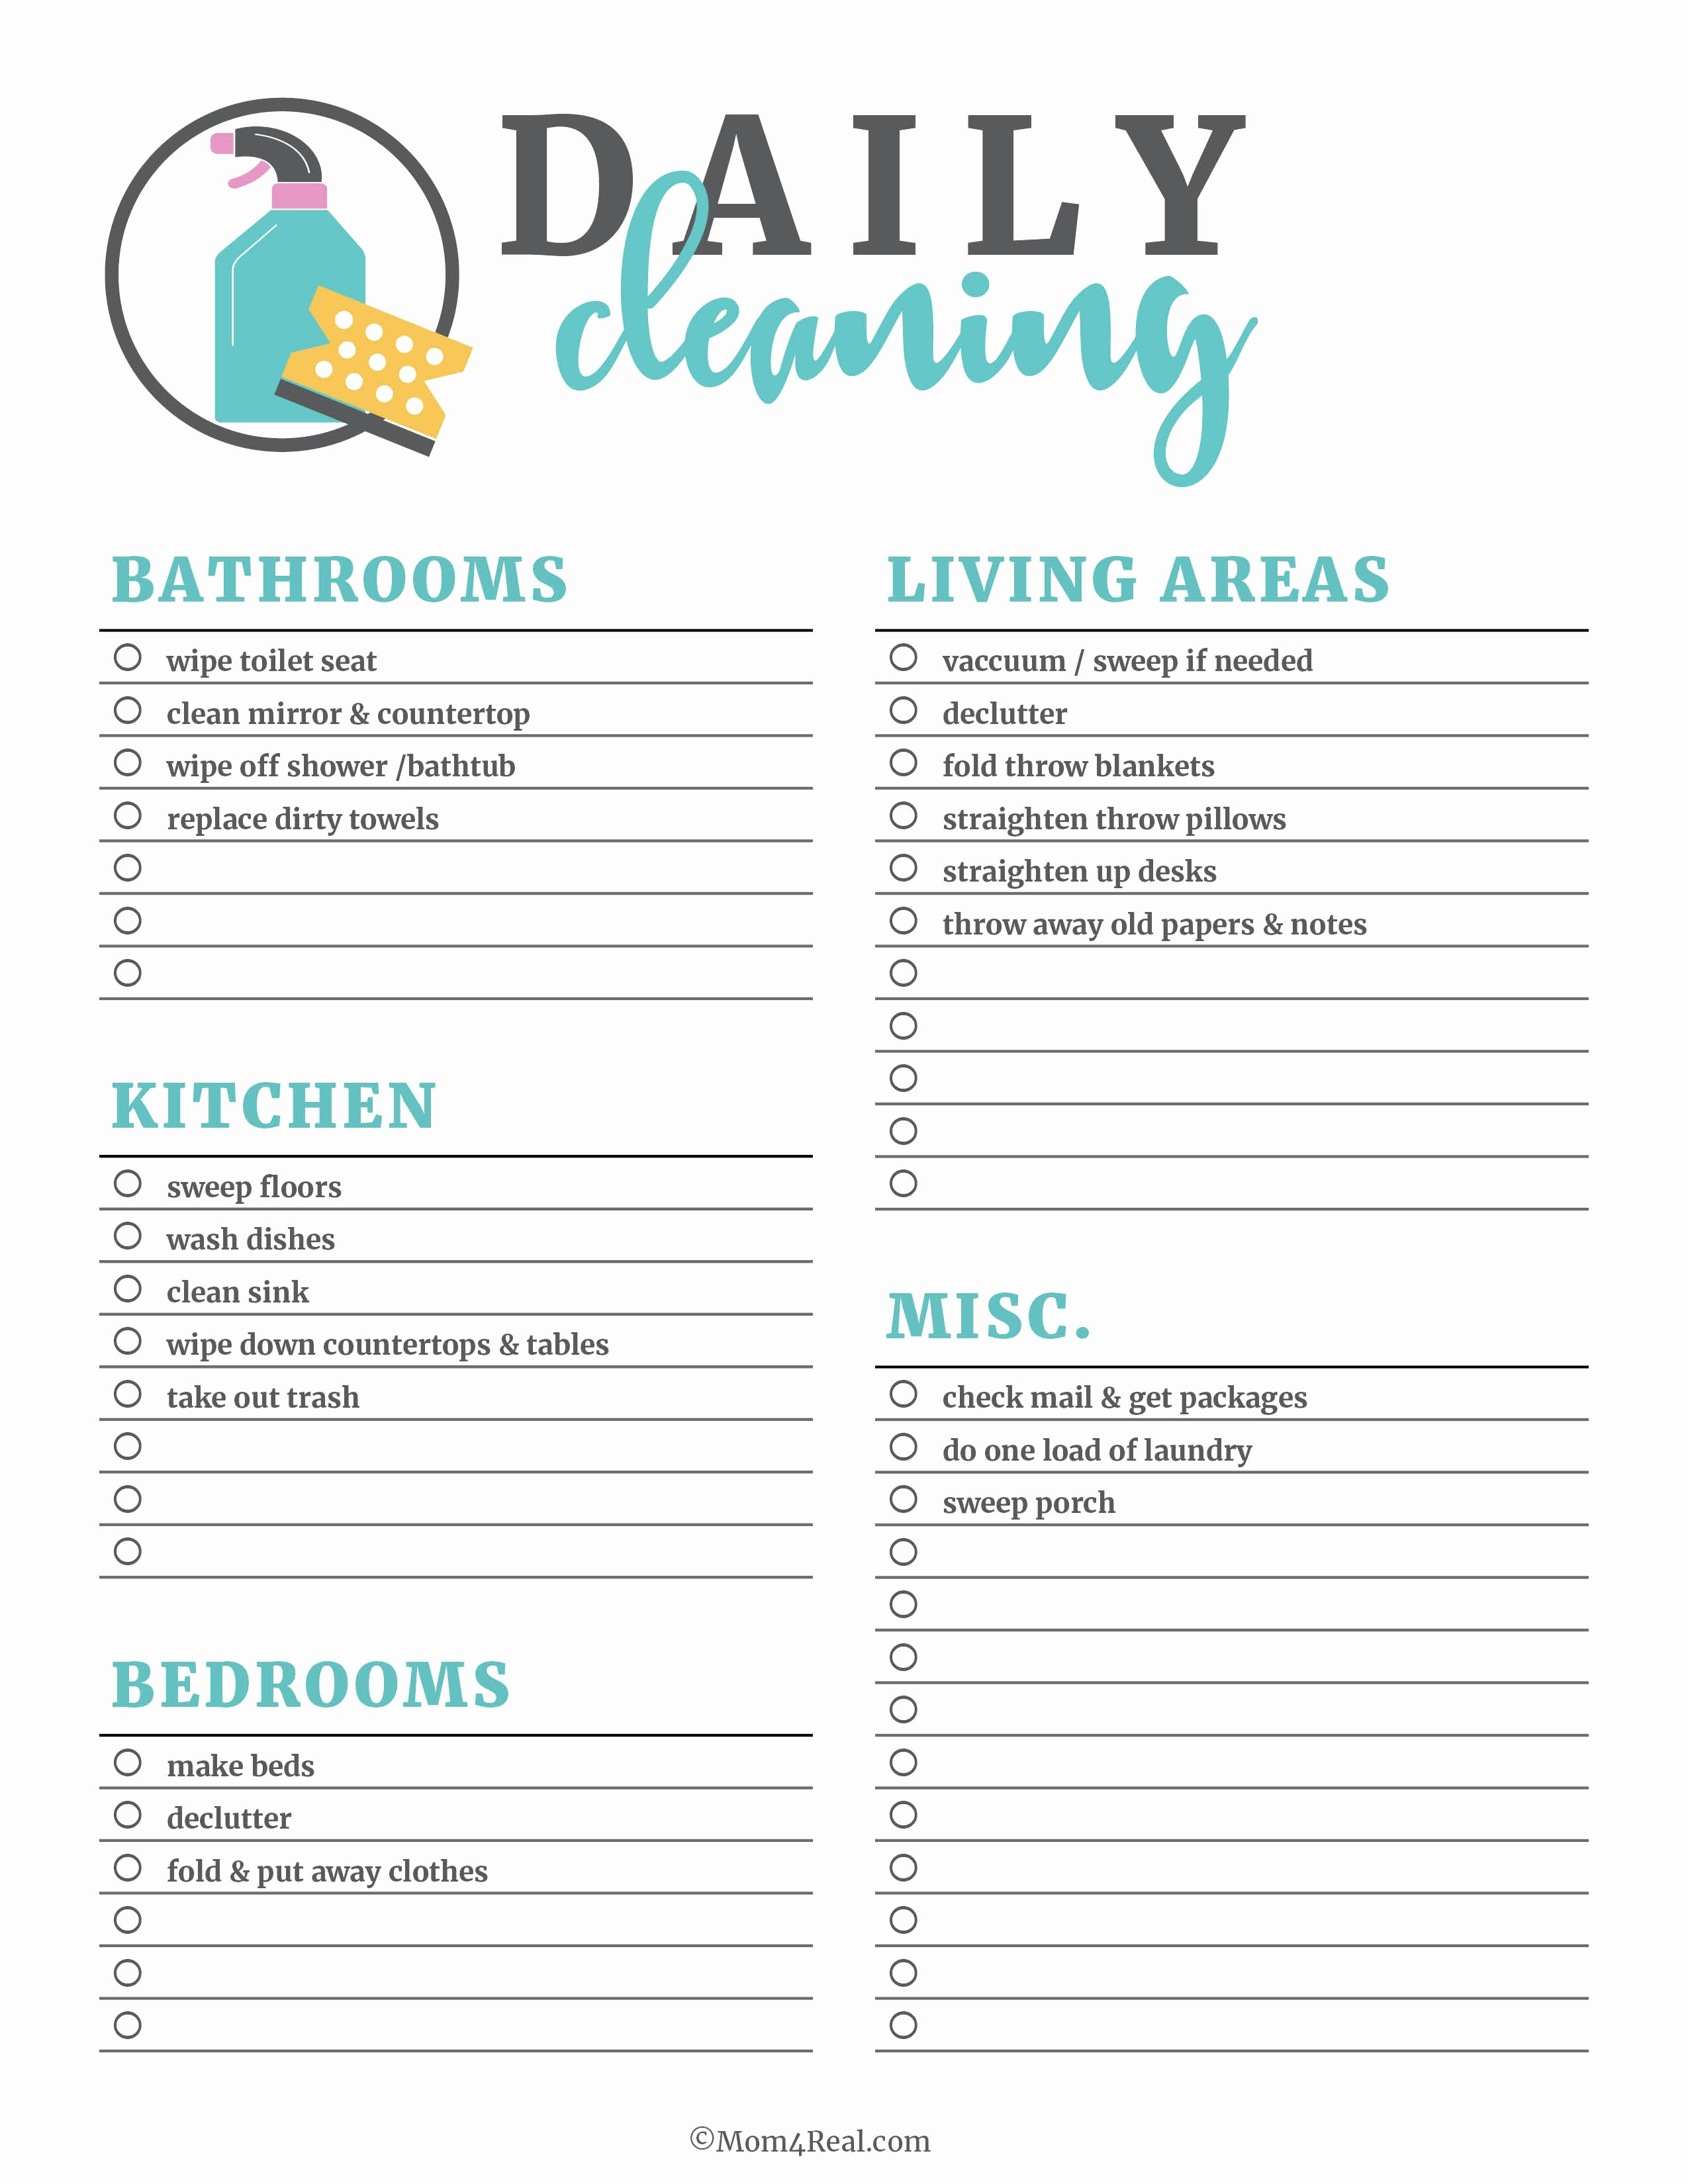 House Cleaning Checklist Template Best Of Printable Cleaning Checklists for Daily Weekly and